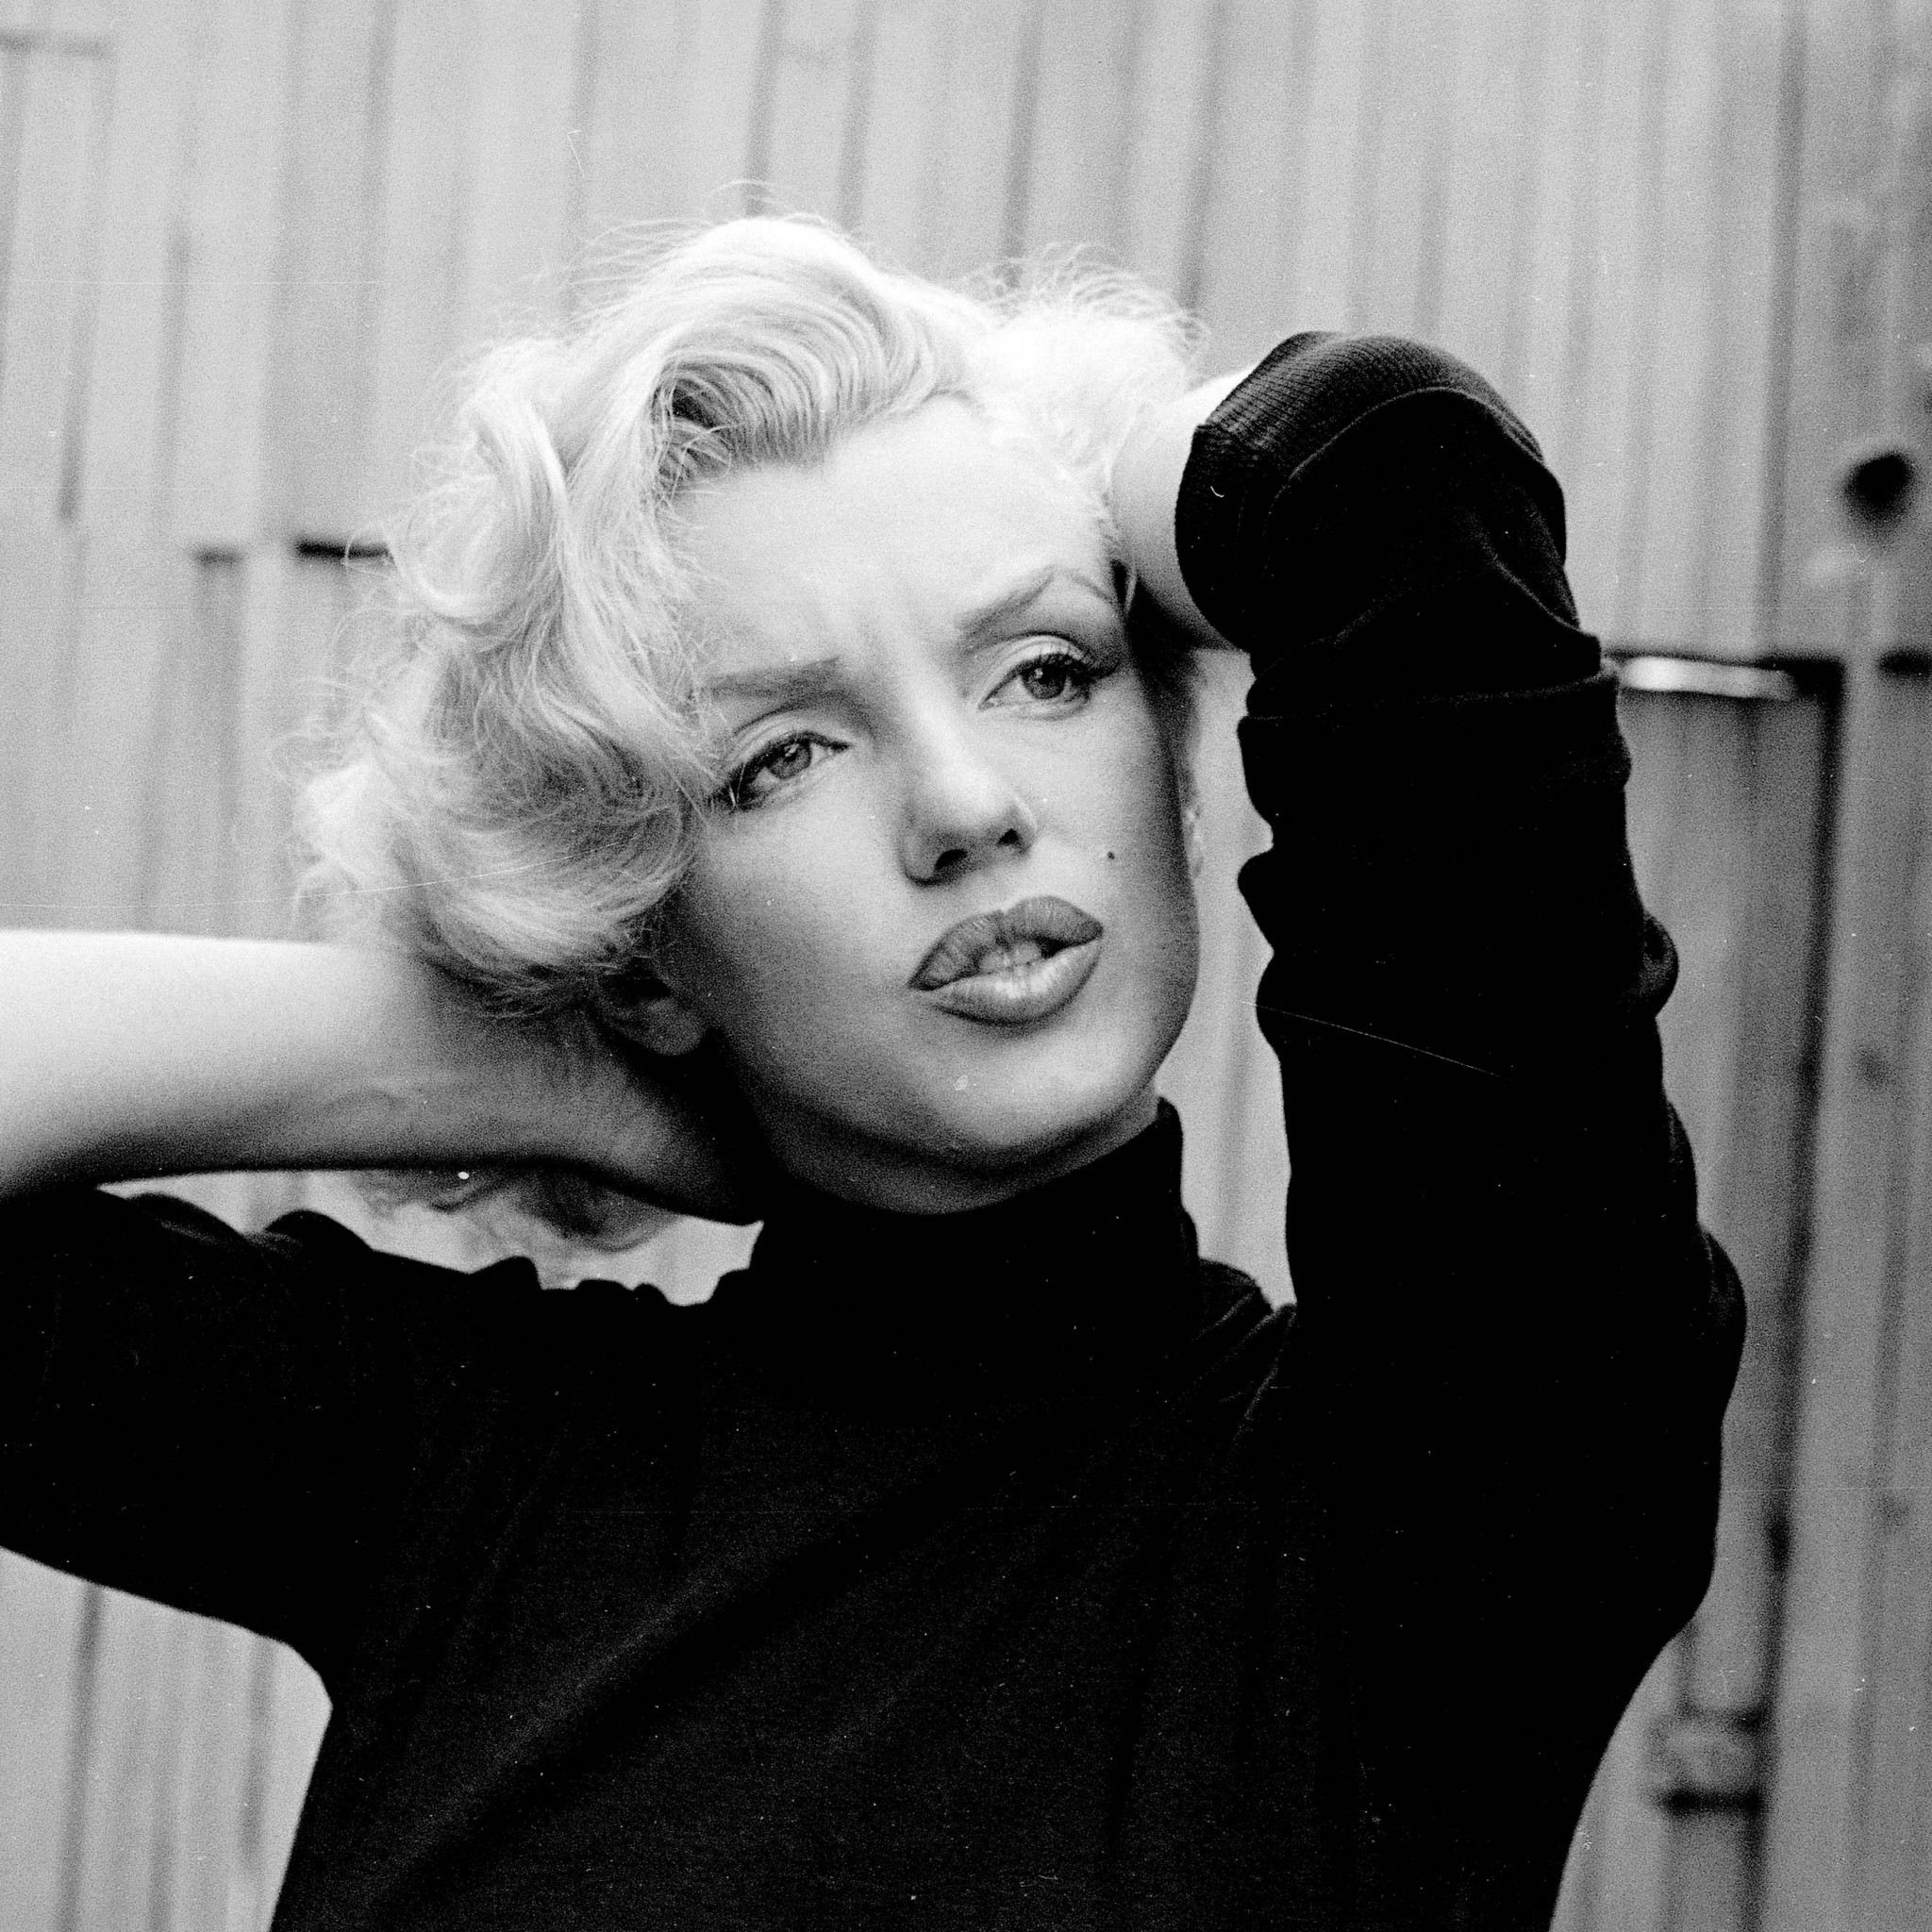 Marilyn monroe images free download impremedia 1920x1080 marilyn monroe free images wallpaper download voltagebd Image collections